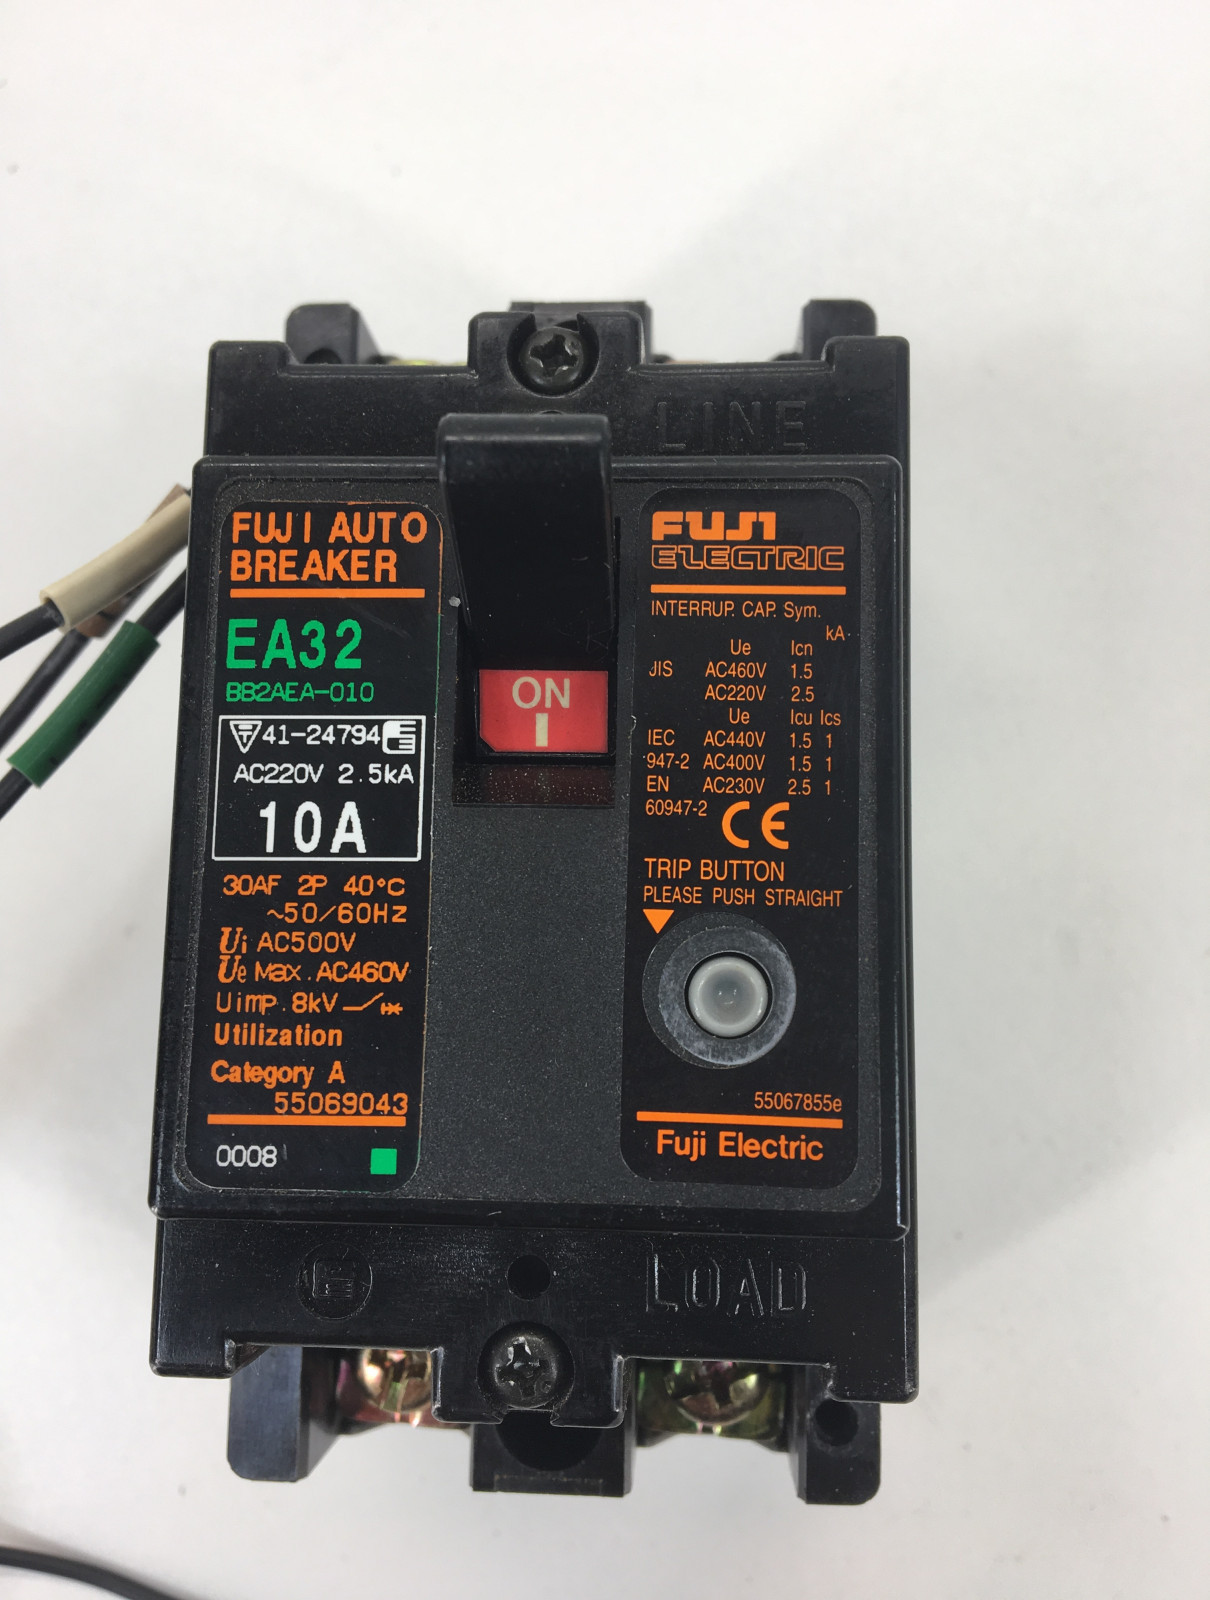 Primary image for Fuji EA32 10A Auto Breaker 2Pole 10A w/Alarm Switch